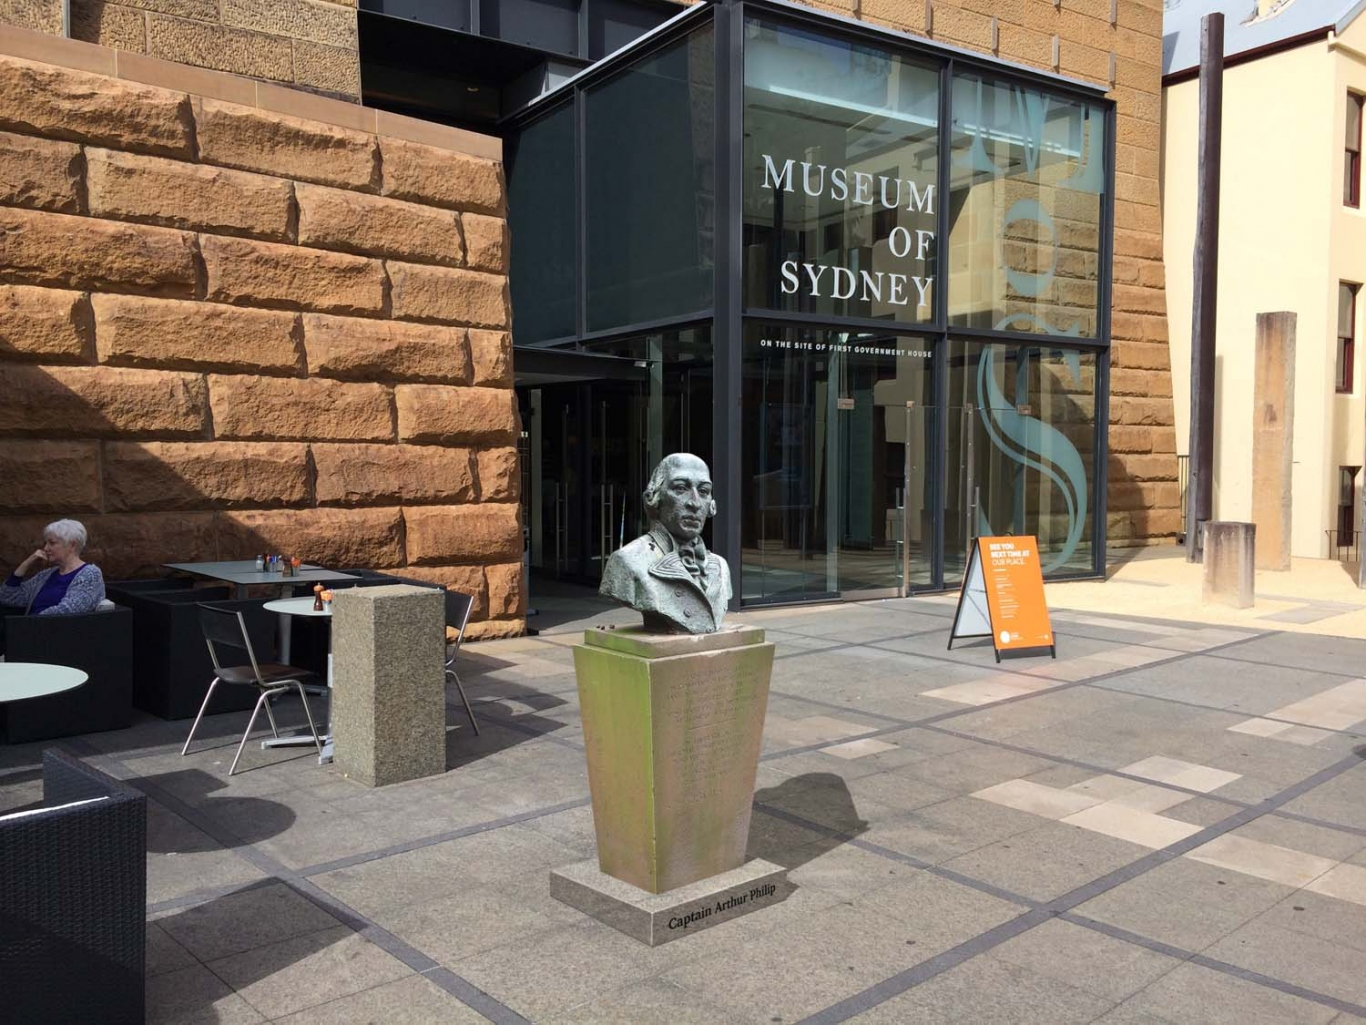 Computer generated image of bust in situ in Museum of Sydney courtyard.